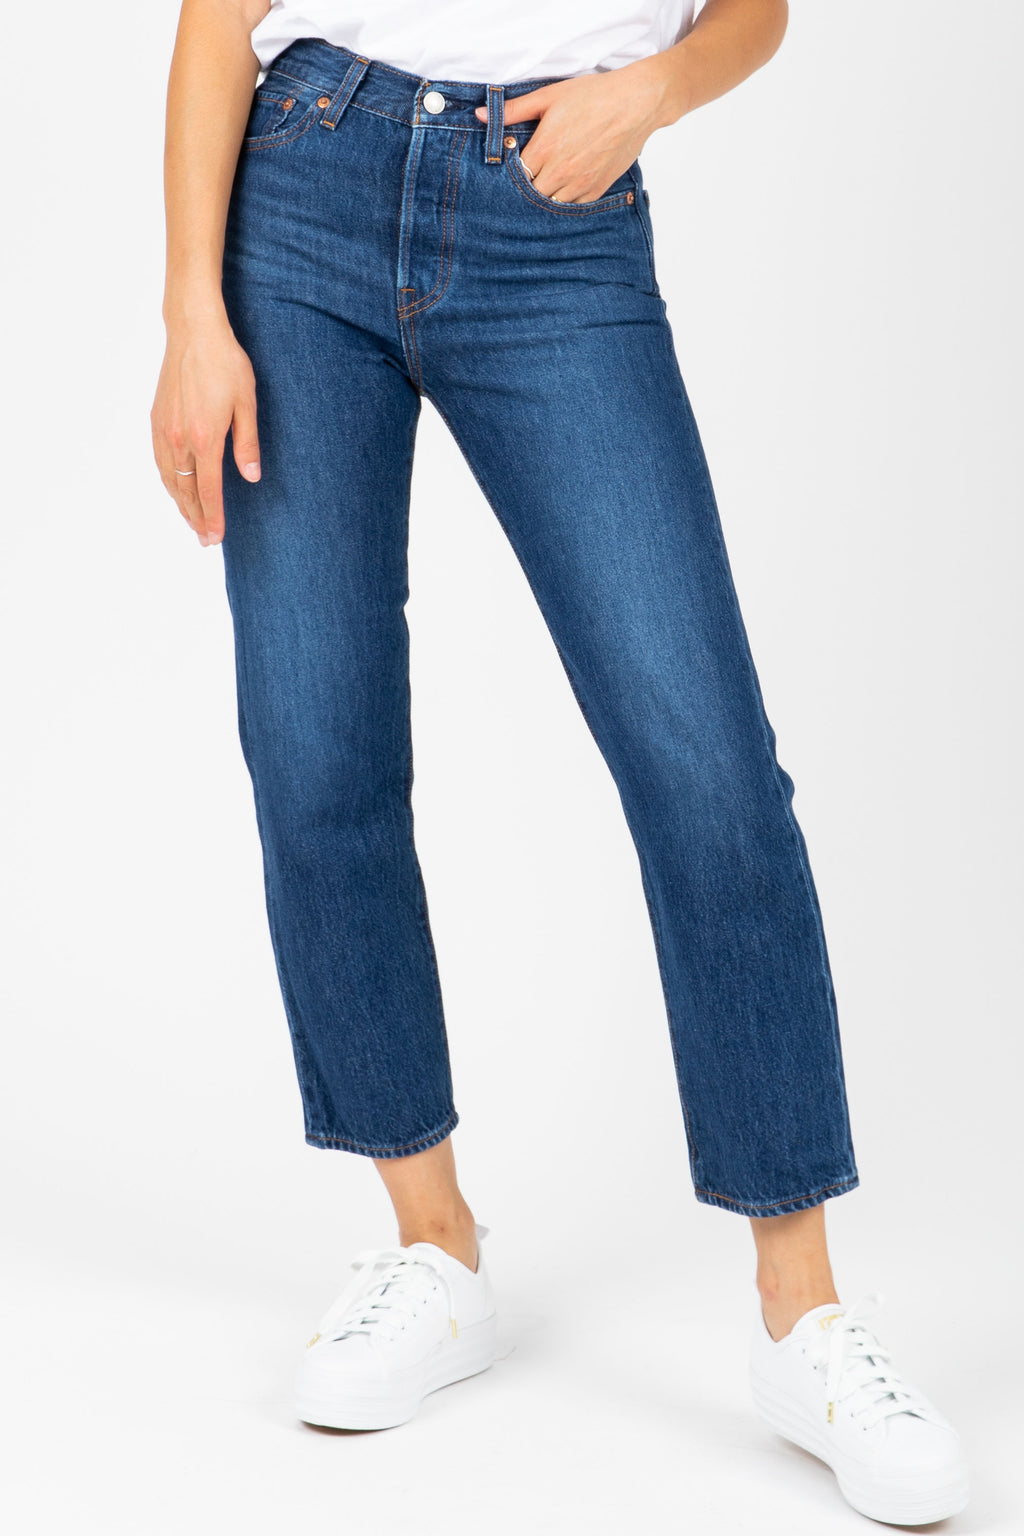 Levi's: Wedgie Fit Straight Jeans in Medium Dark Wash